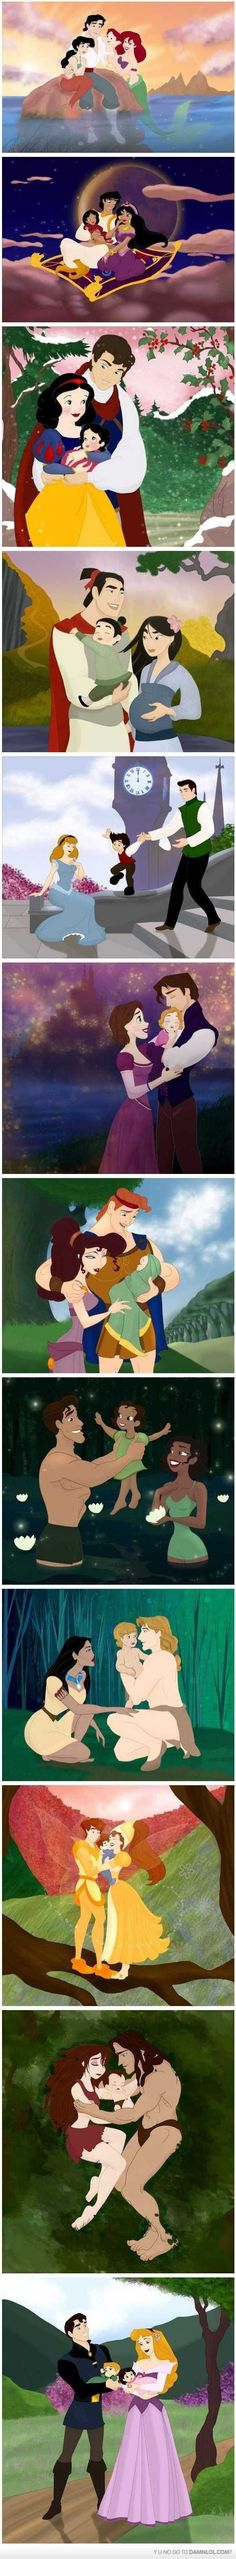 Disney princesses and their kid(s)